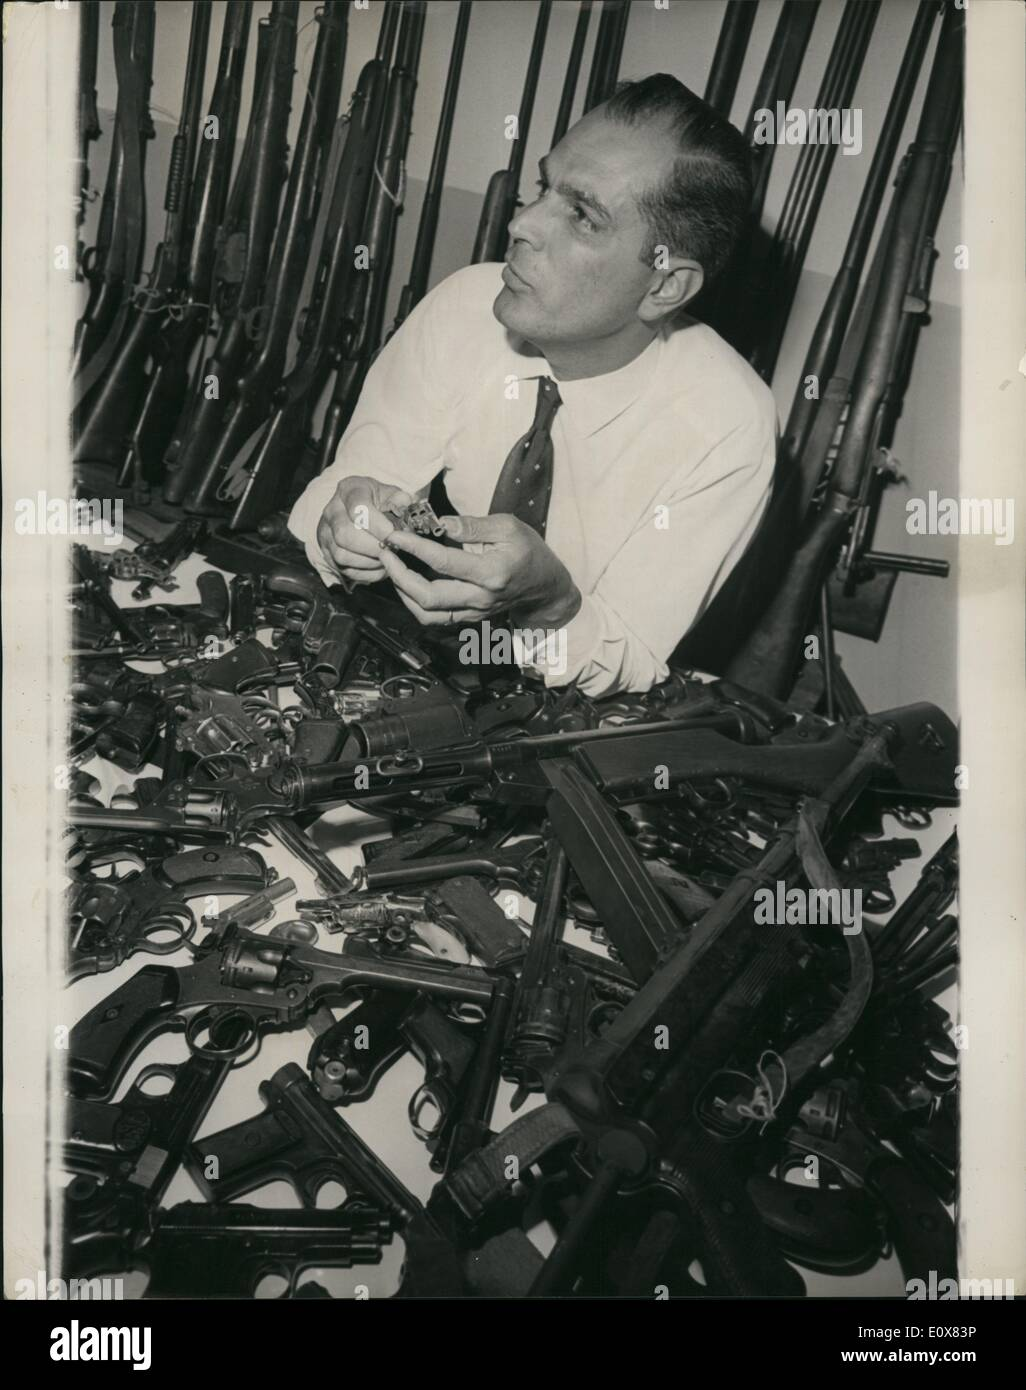 Aug. 08, 1965 - 400 guns in Amnesty armoury: All sorts of weapons were piled high on a table in a London office yesterday just part of a haul of firearms handed in to the police throughout Britain. In London alone 449 weapons have been surrendered since the firearm amnesty a week ago. When the amnesty ends in October, people illegally holding firearms will face heavier fines or a jail sentence. Even so, experts at the Metropolitan Police firearms department do not expect the total national haul to excessd 3,000 guns. Scotland Yard's chief firearms officers, Mr - Stock Image